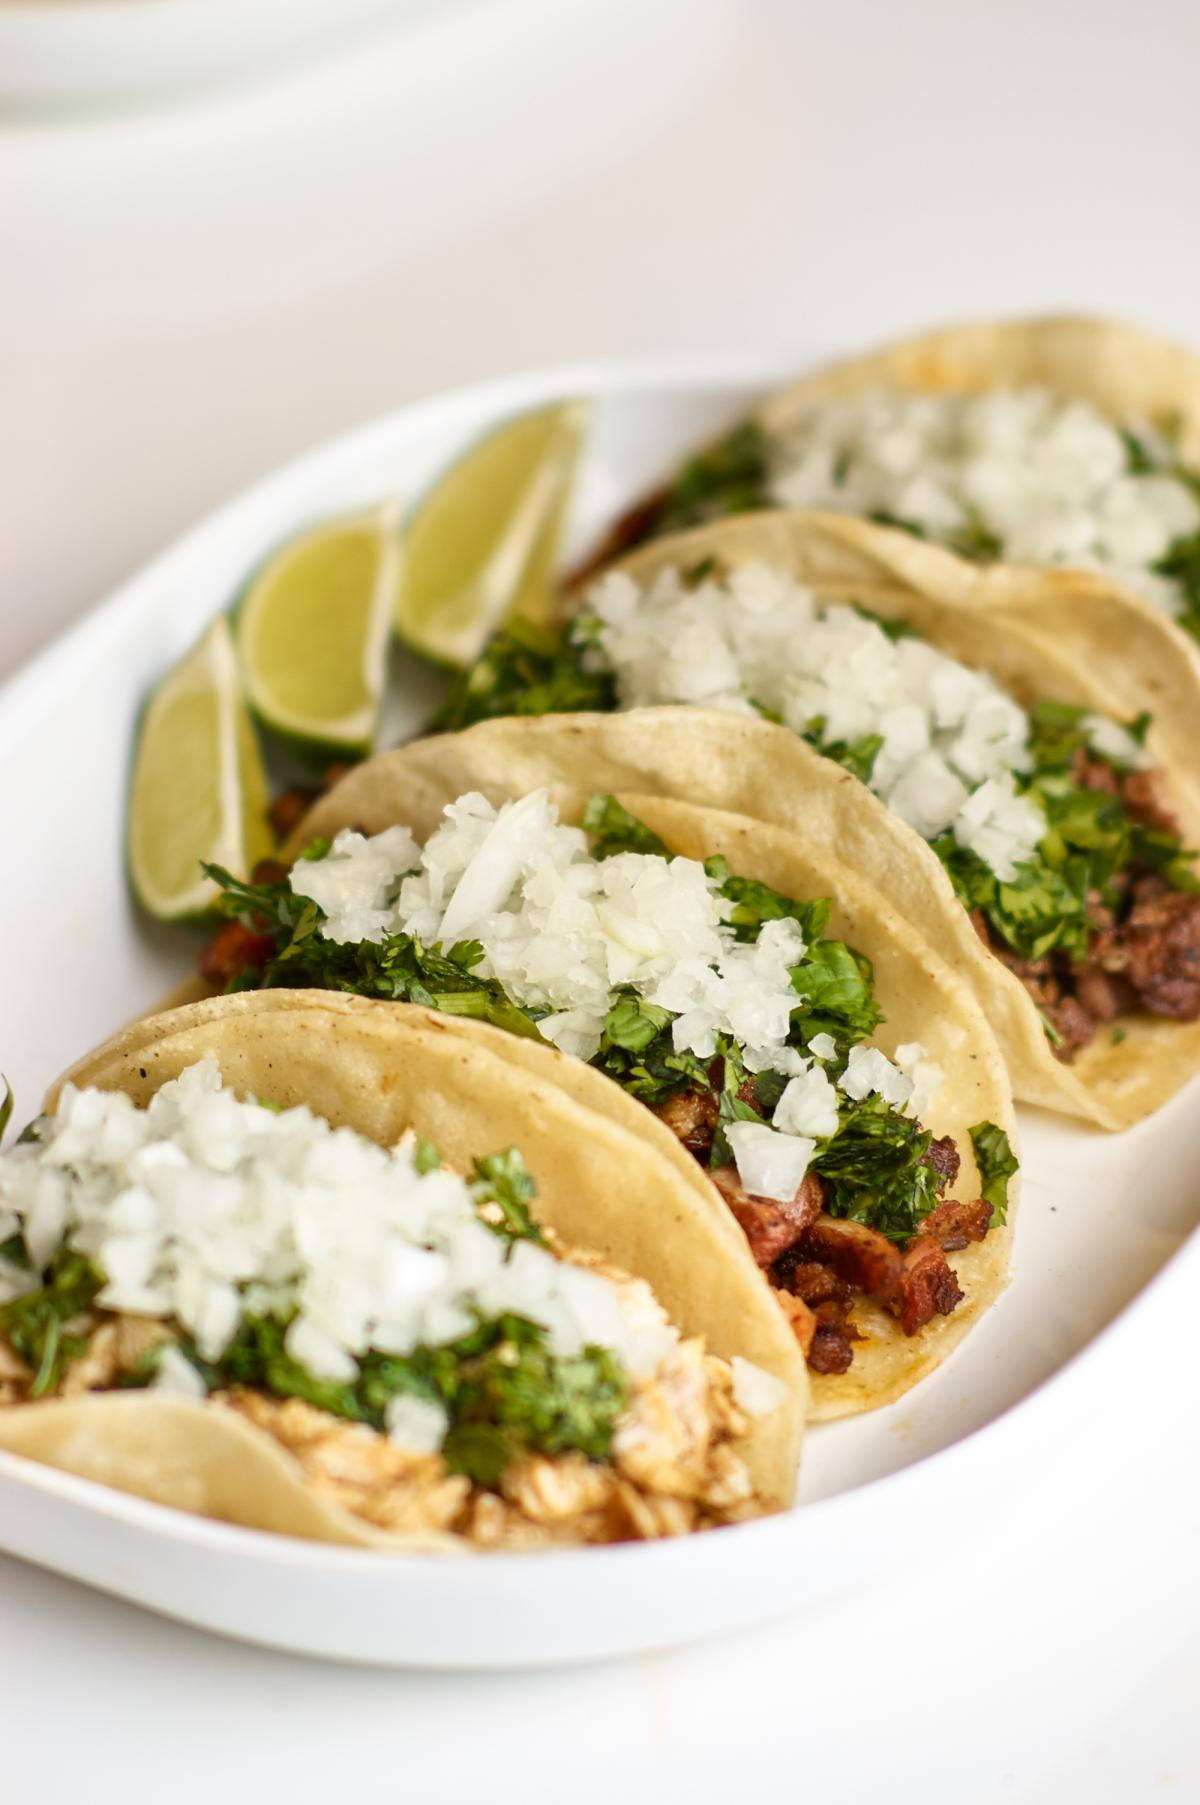 Mexican Tacos Plate Free Photo #425249